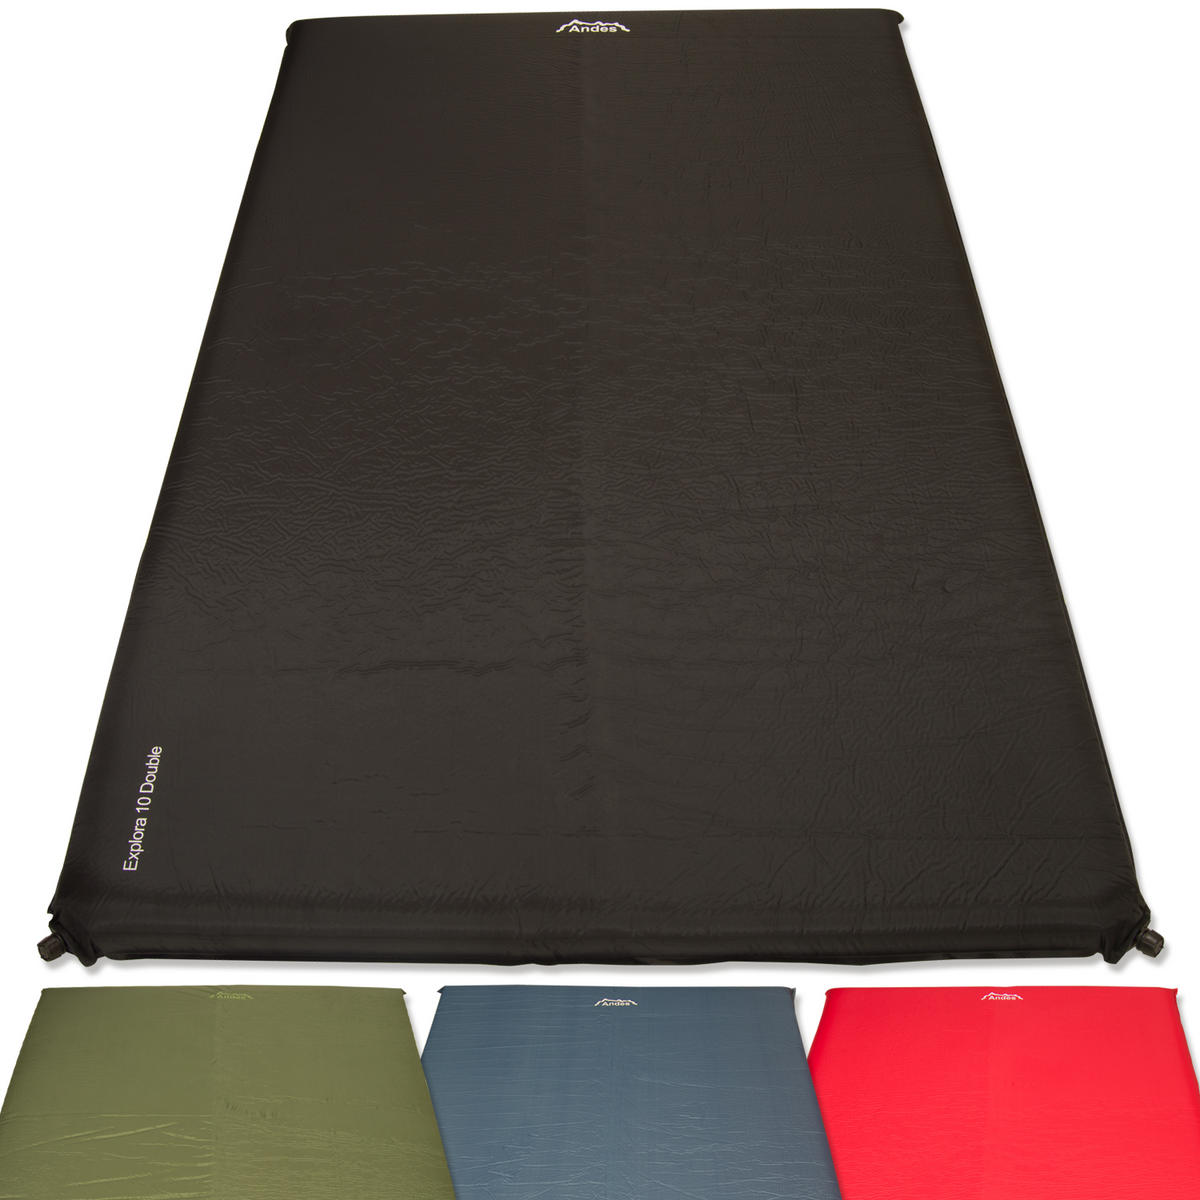 Andes Explora 10 Double Self Inflating Camping Mat